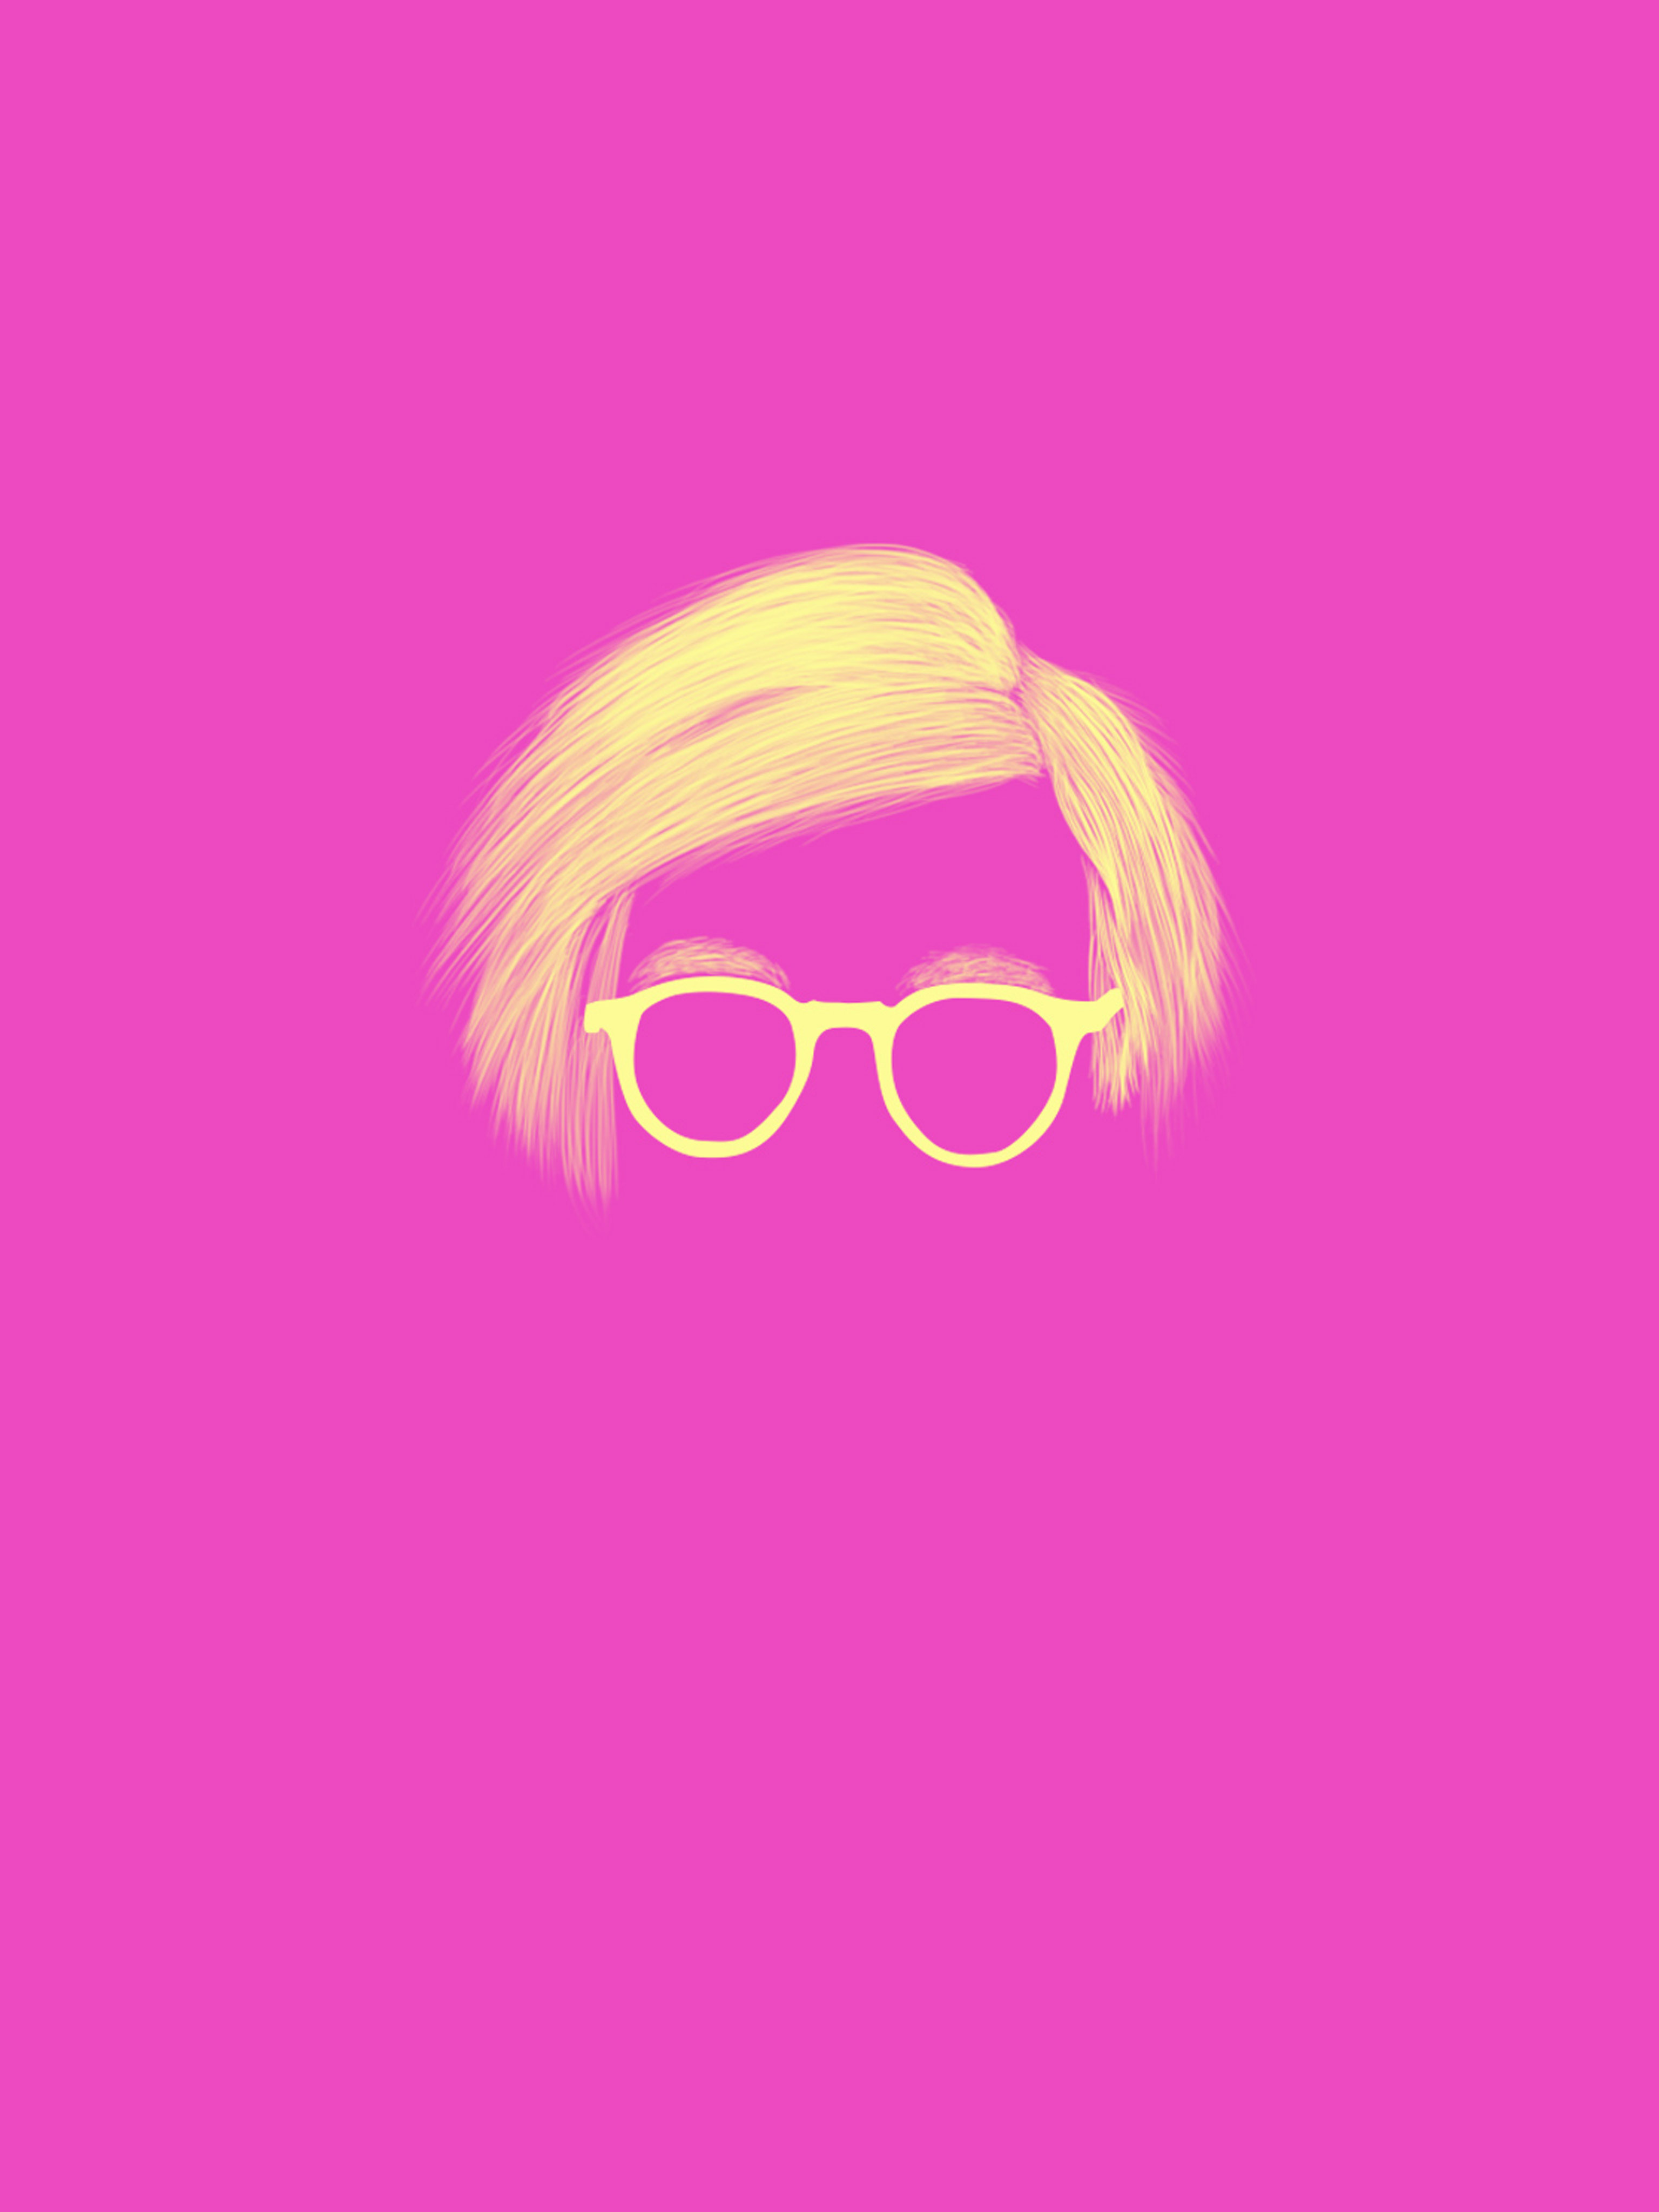 Andy Warhol Mobile Wallpaper